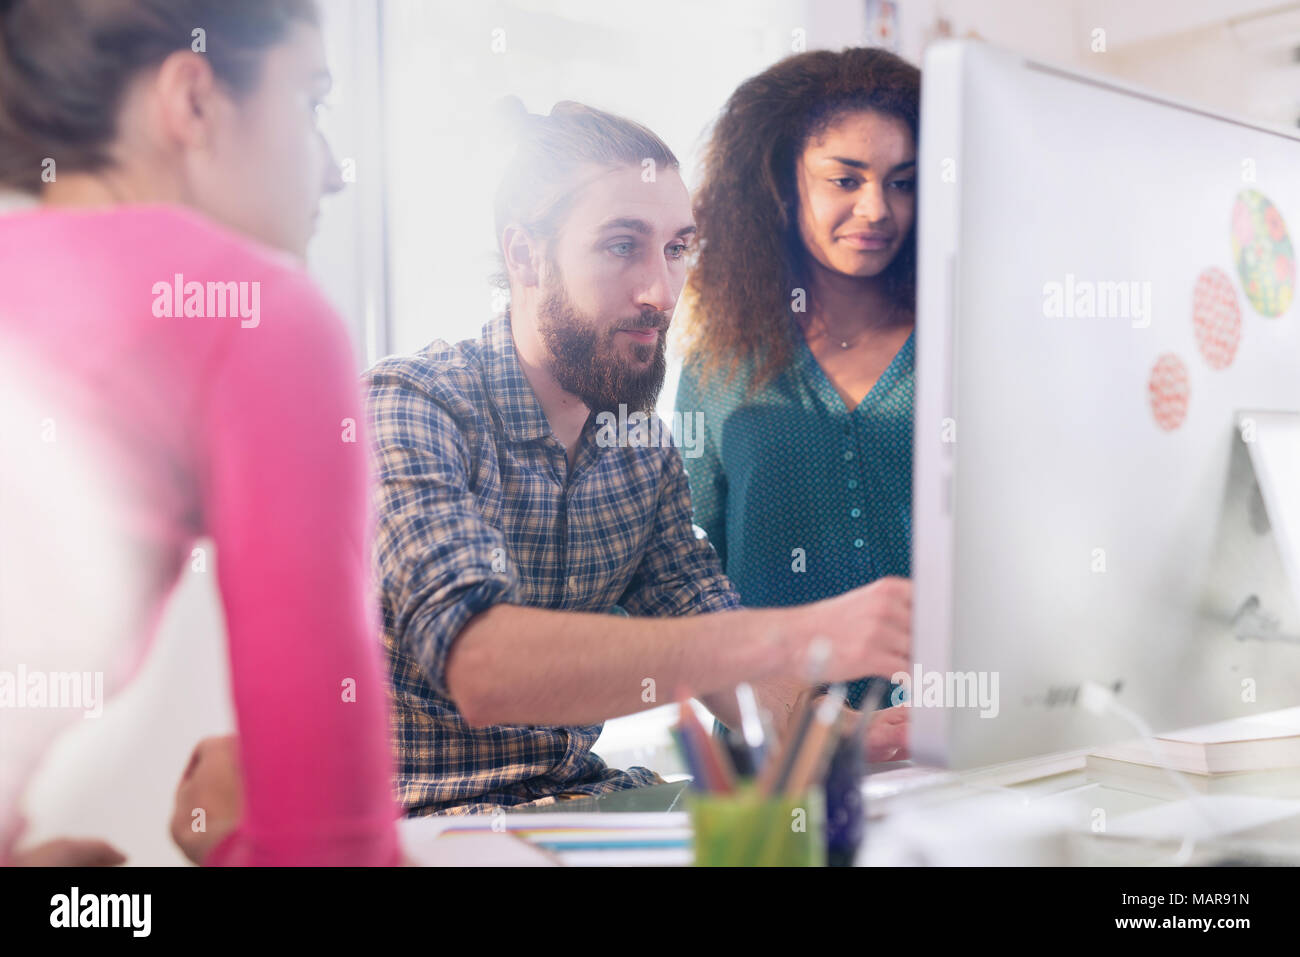 At the office young creative and multi-ethnic team is at work - Stock Image